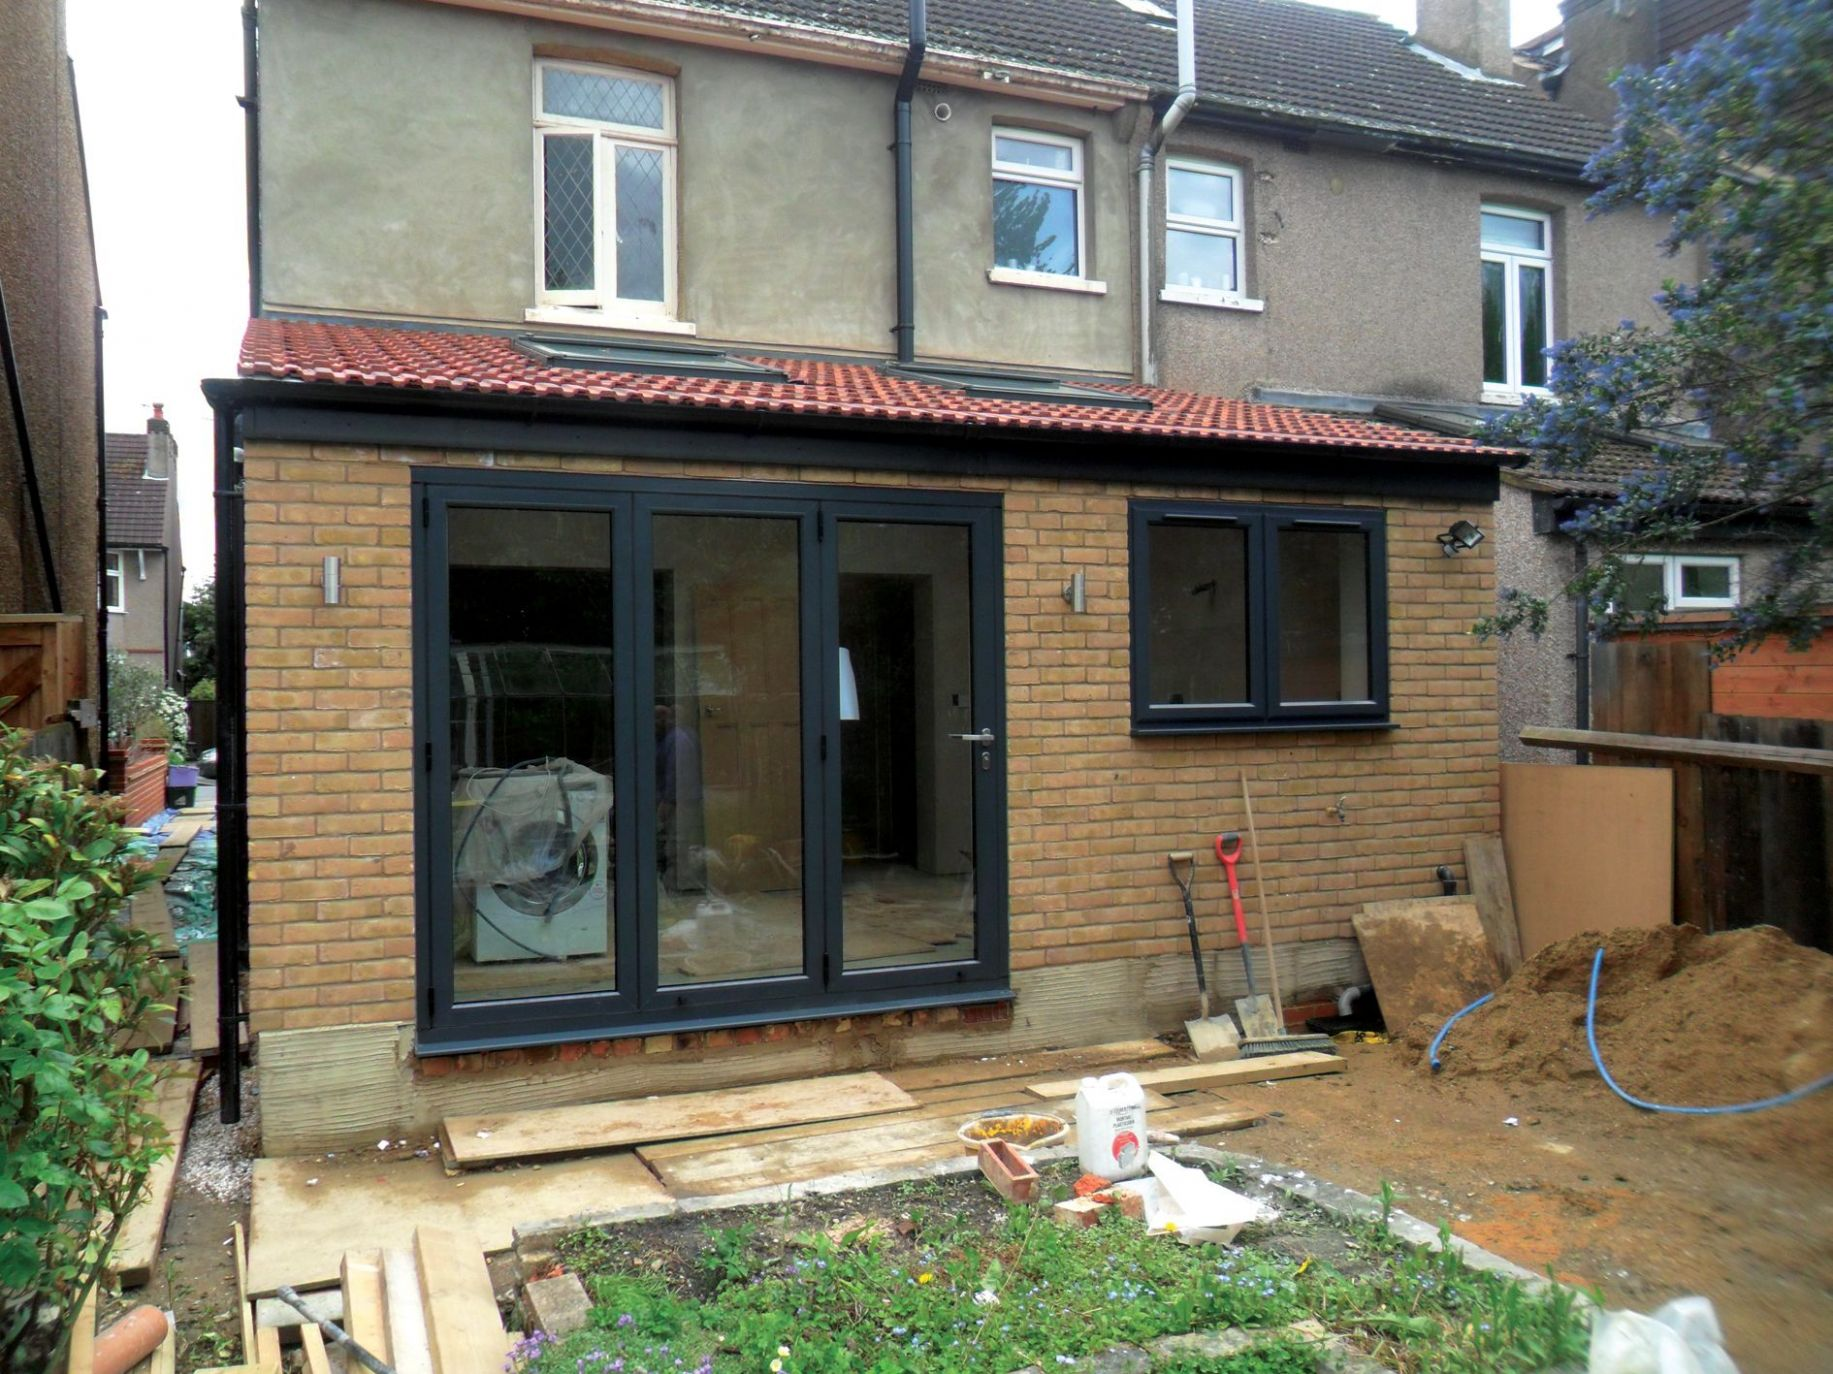 rear extension bifold doors and window - Google Search | House ..